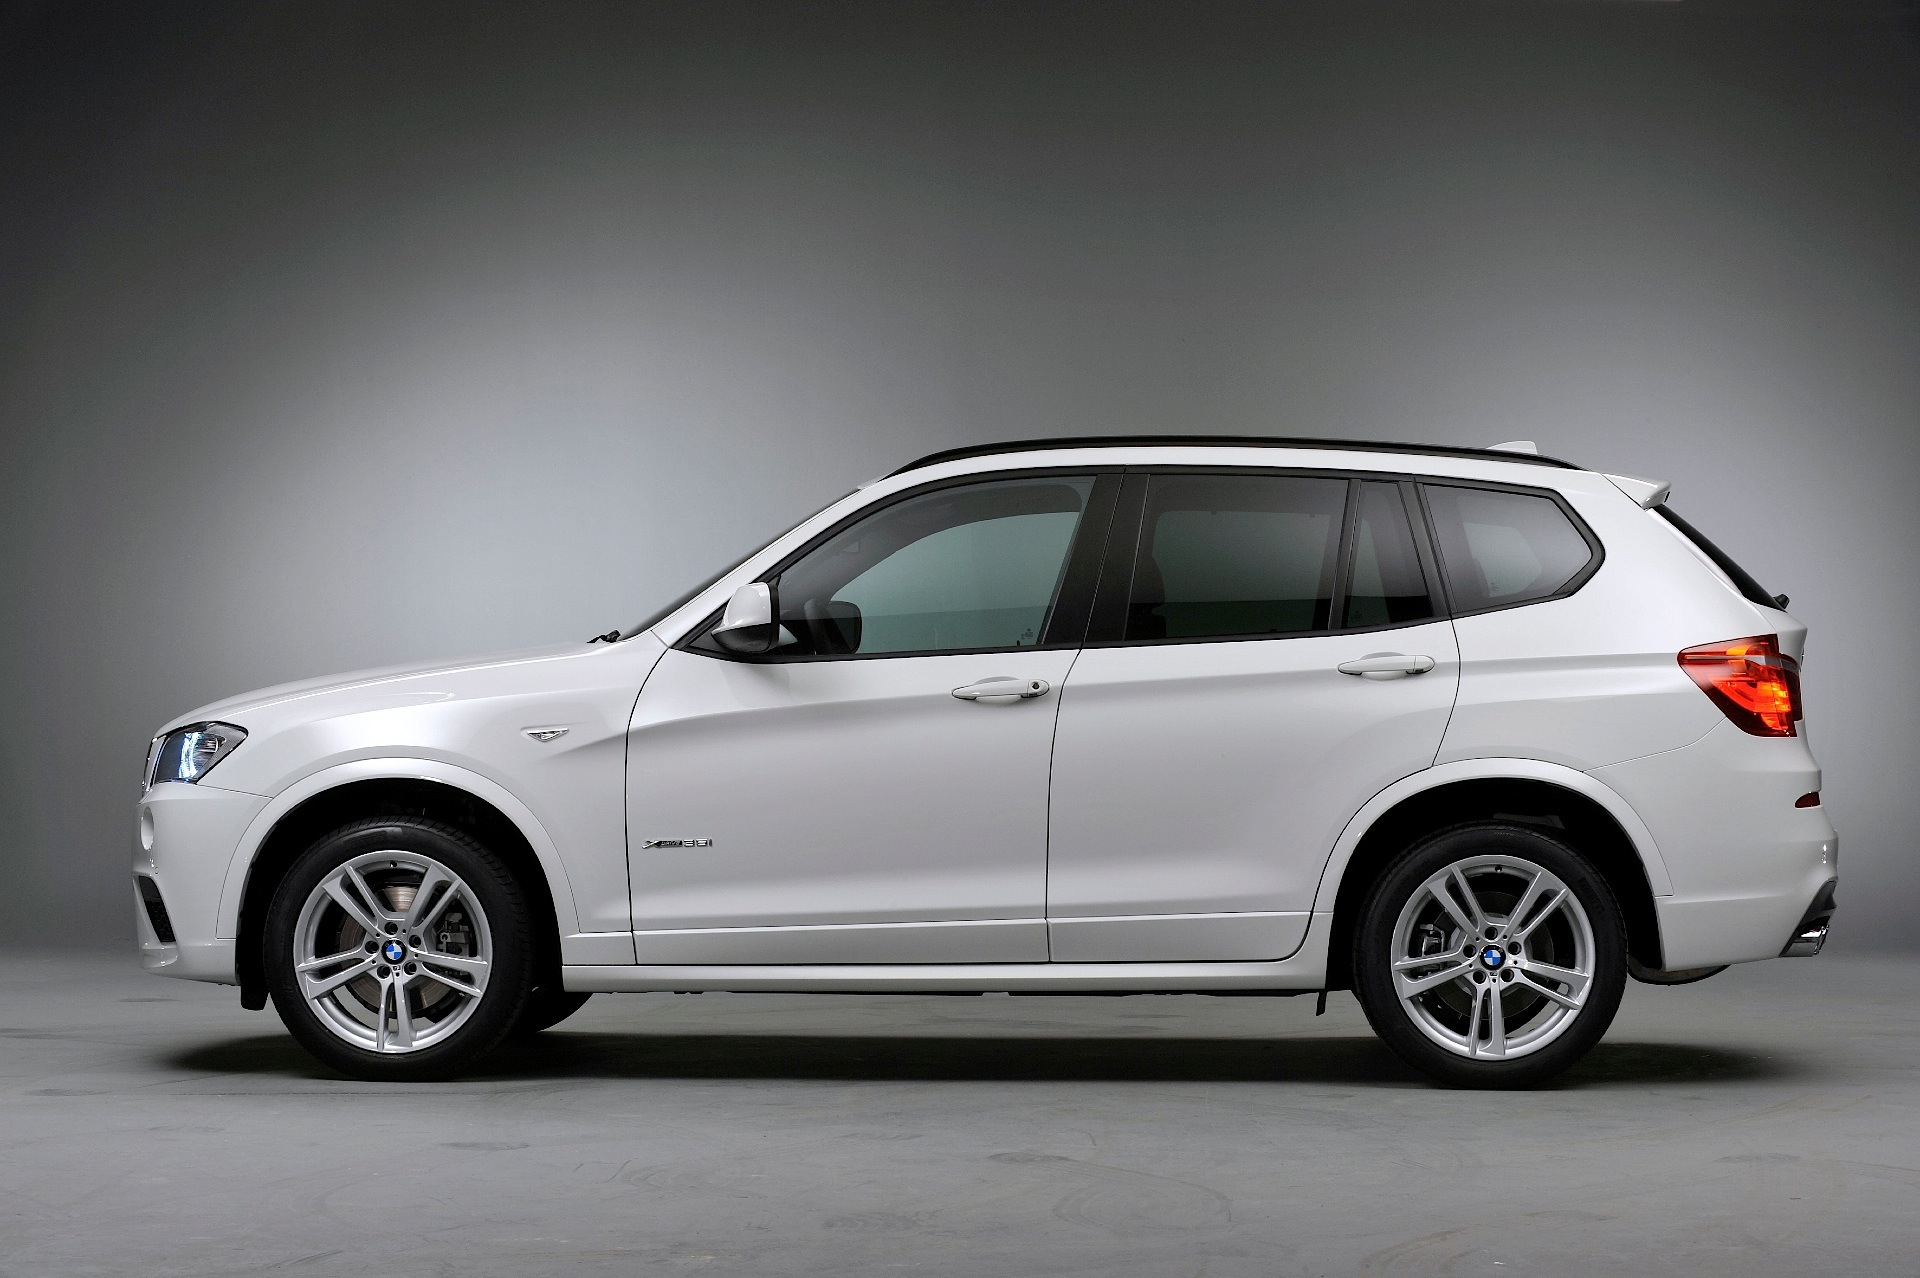 bmw x3  f25  specs  u0026 photos - 2010  2011  2012  2013